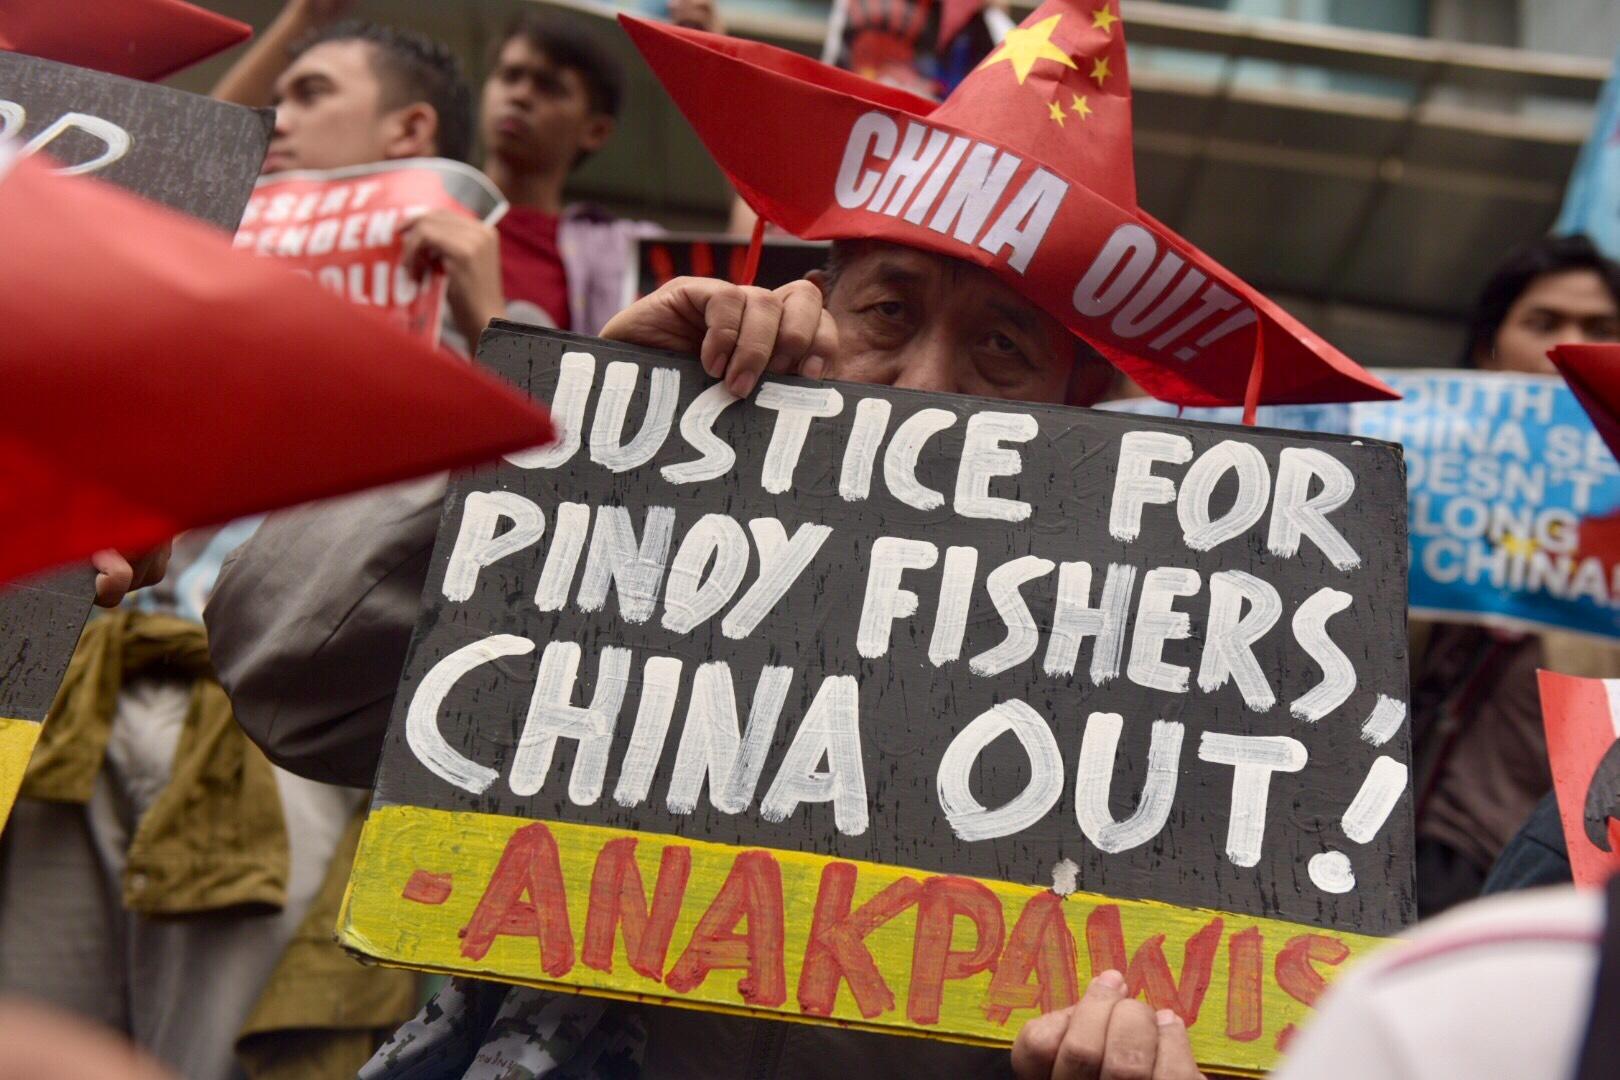 CHINA OUT! Militant groups call on China to leave the disputed territories in the West Philippine Sea.